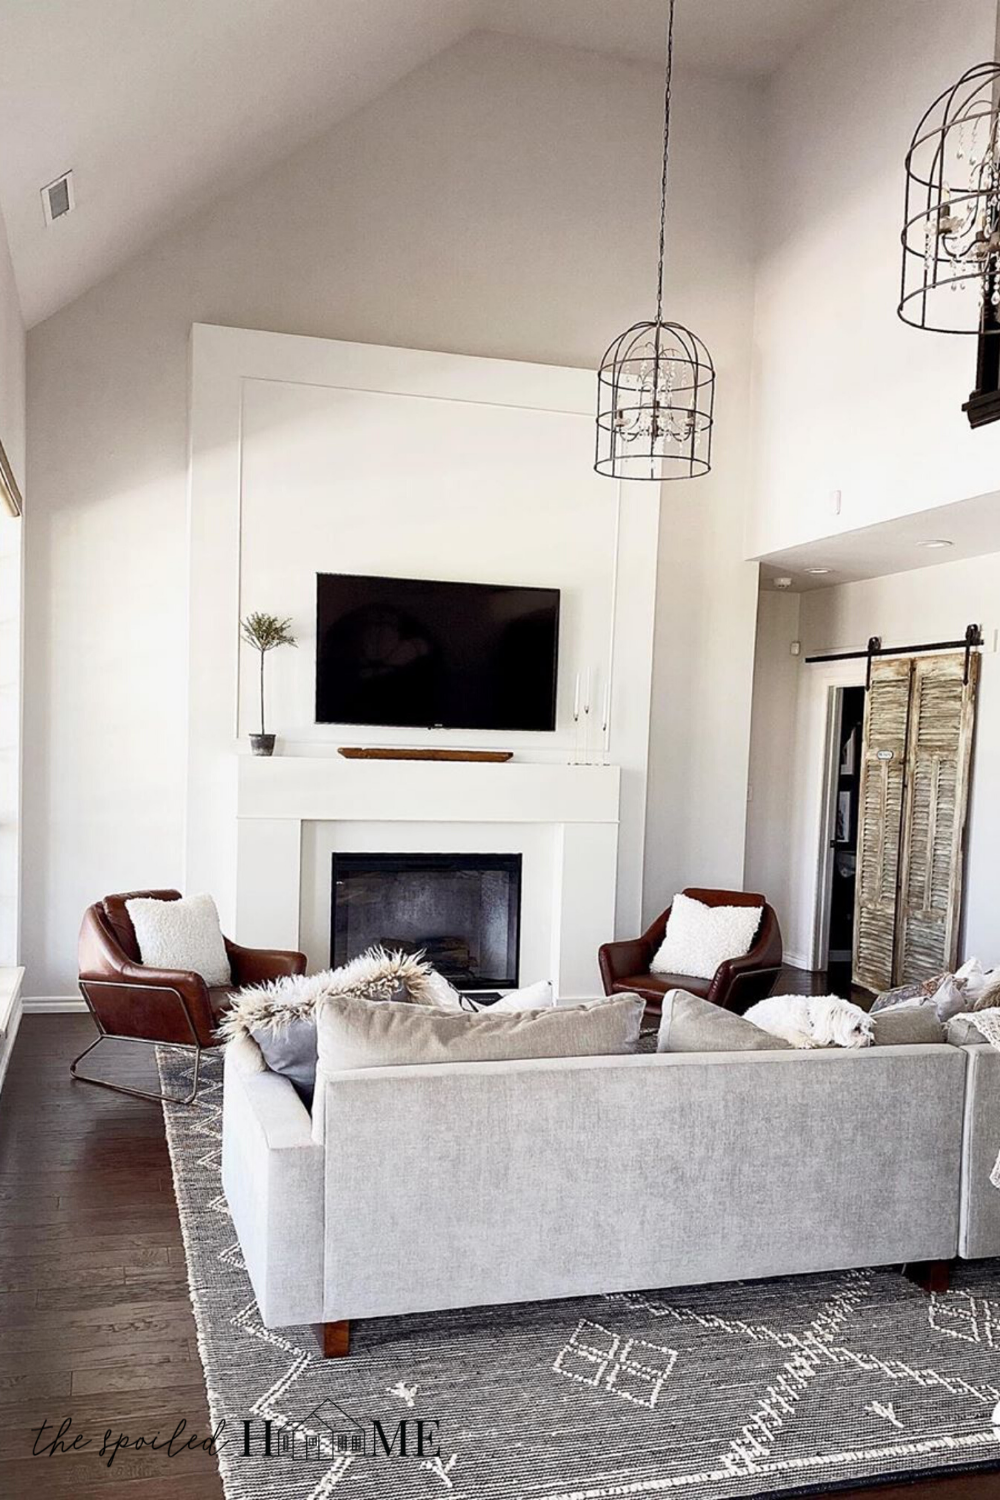 Pin On Home Decor #updating #living #room #ideas